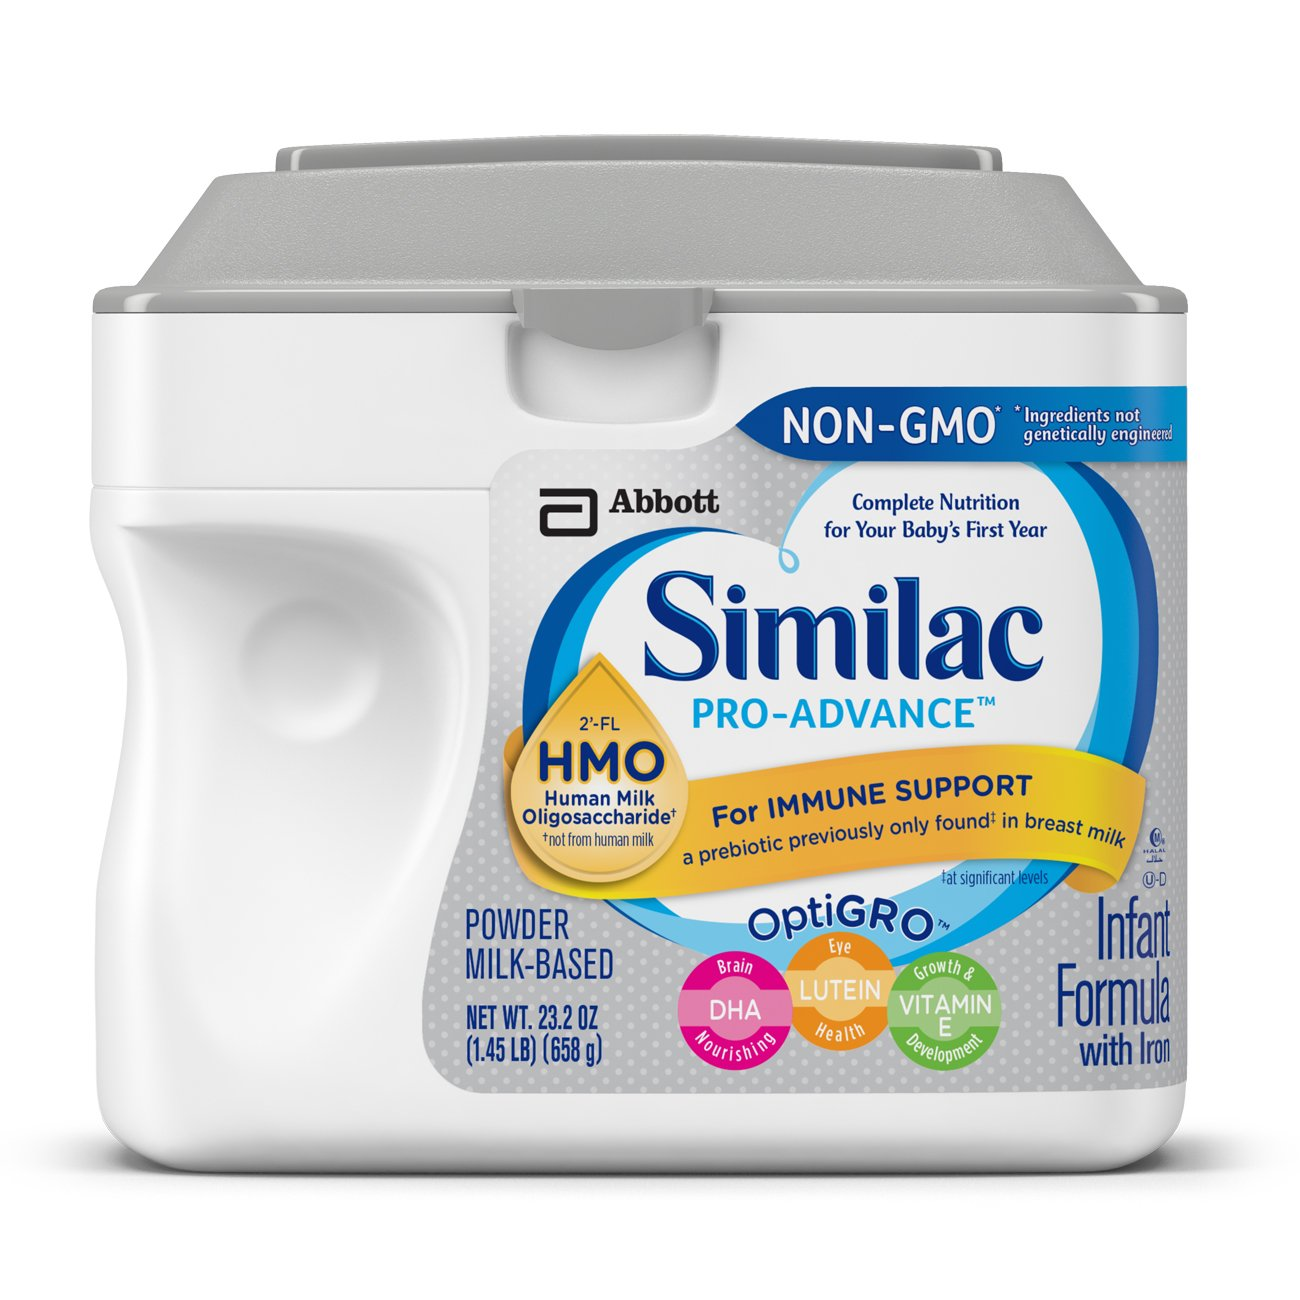 Similac Pro-Advance Non-GMO Infant Formula with Iron, with 2'-FL HMO, For Immune Support, Baby Formula, Powder, 23.2 ounces, 6 count by Similac